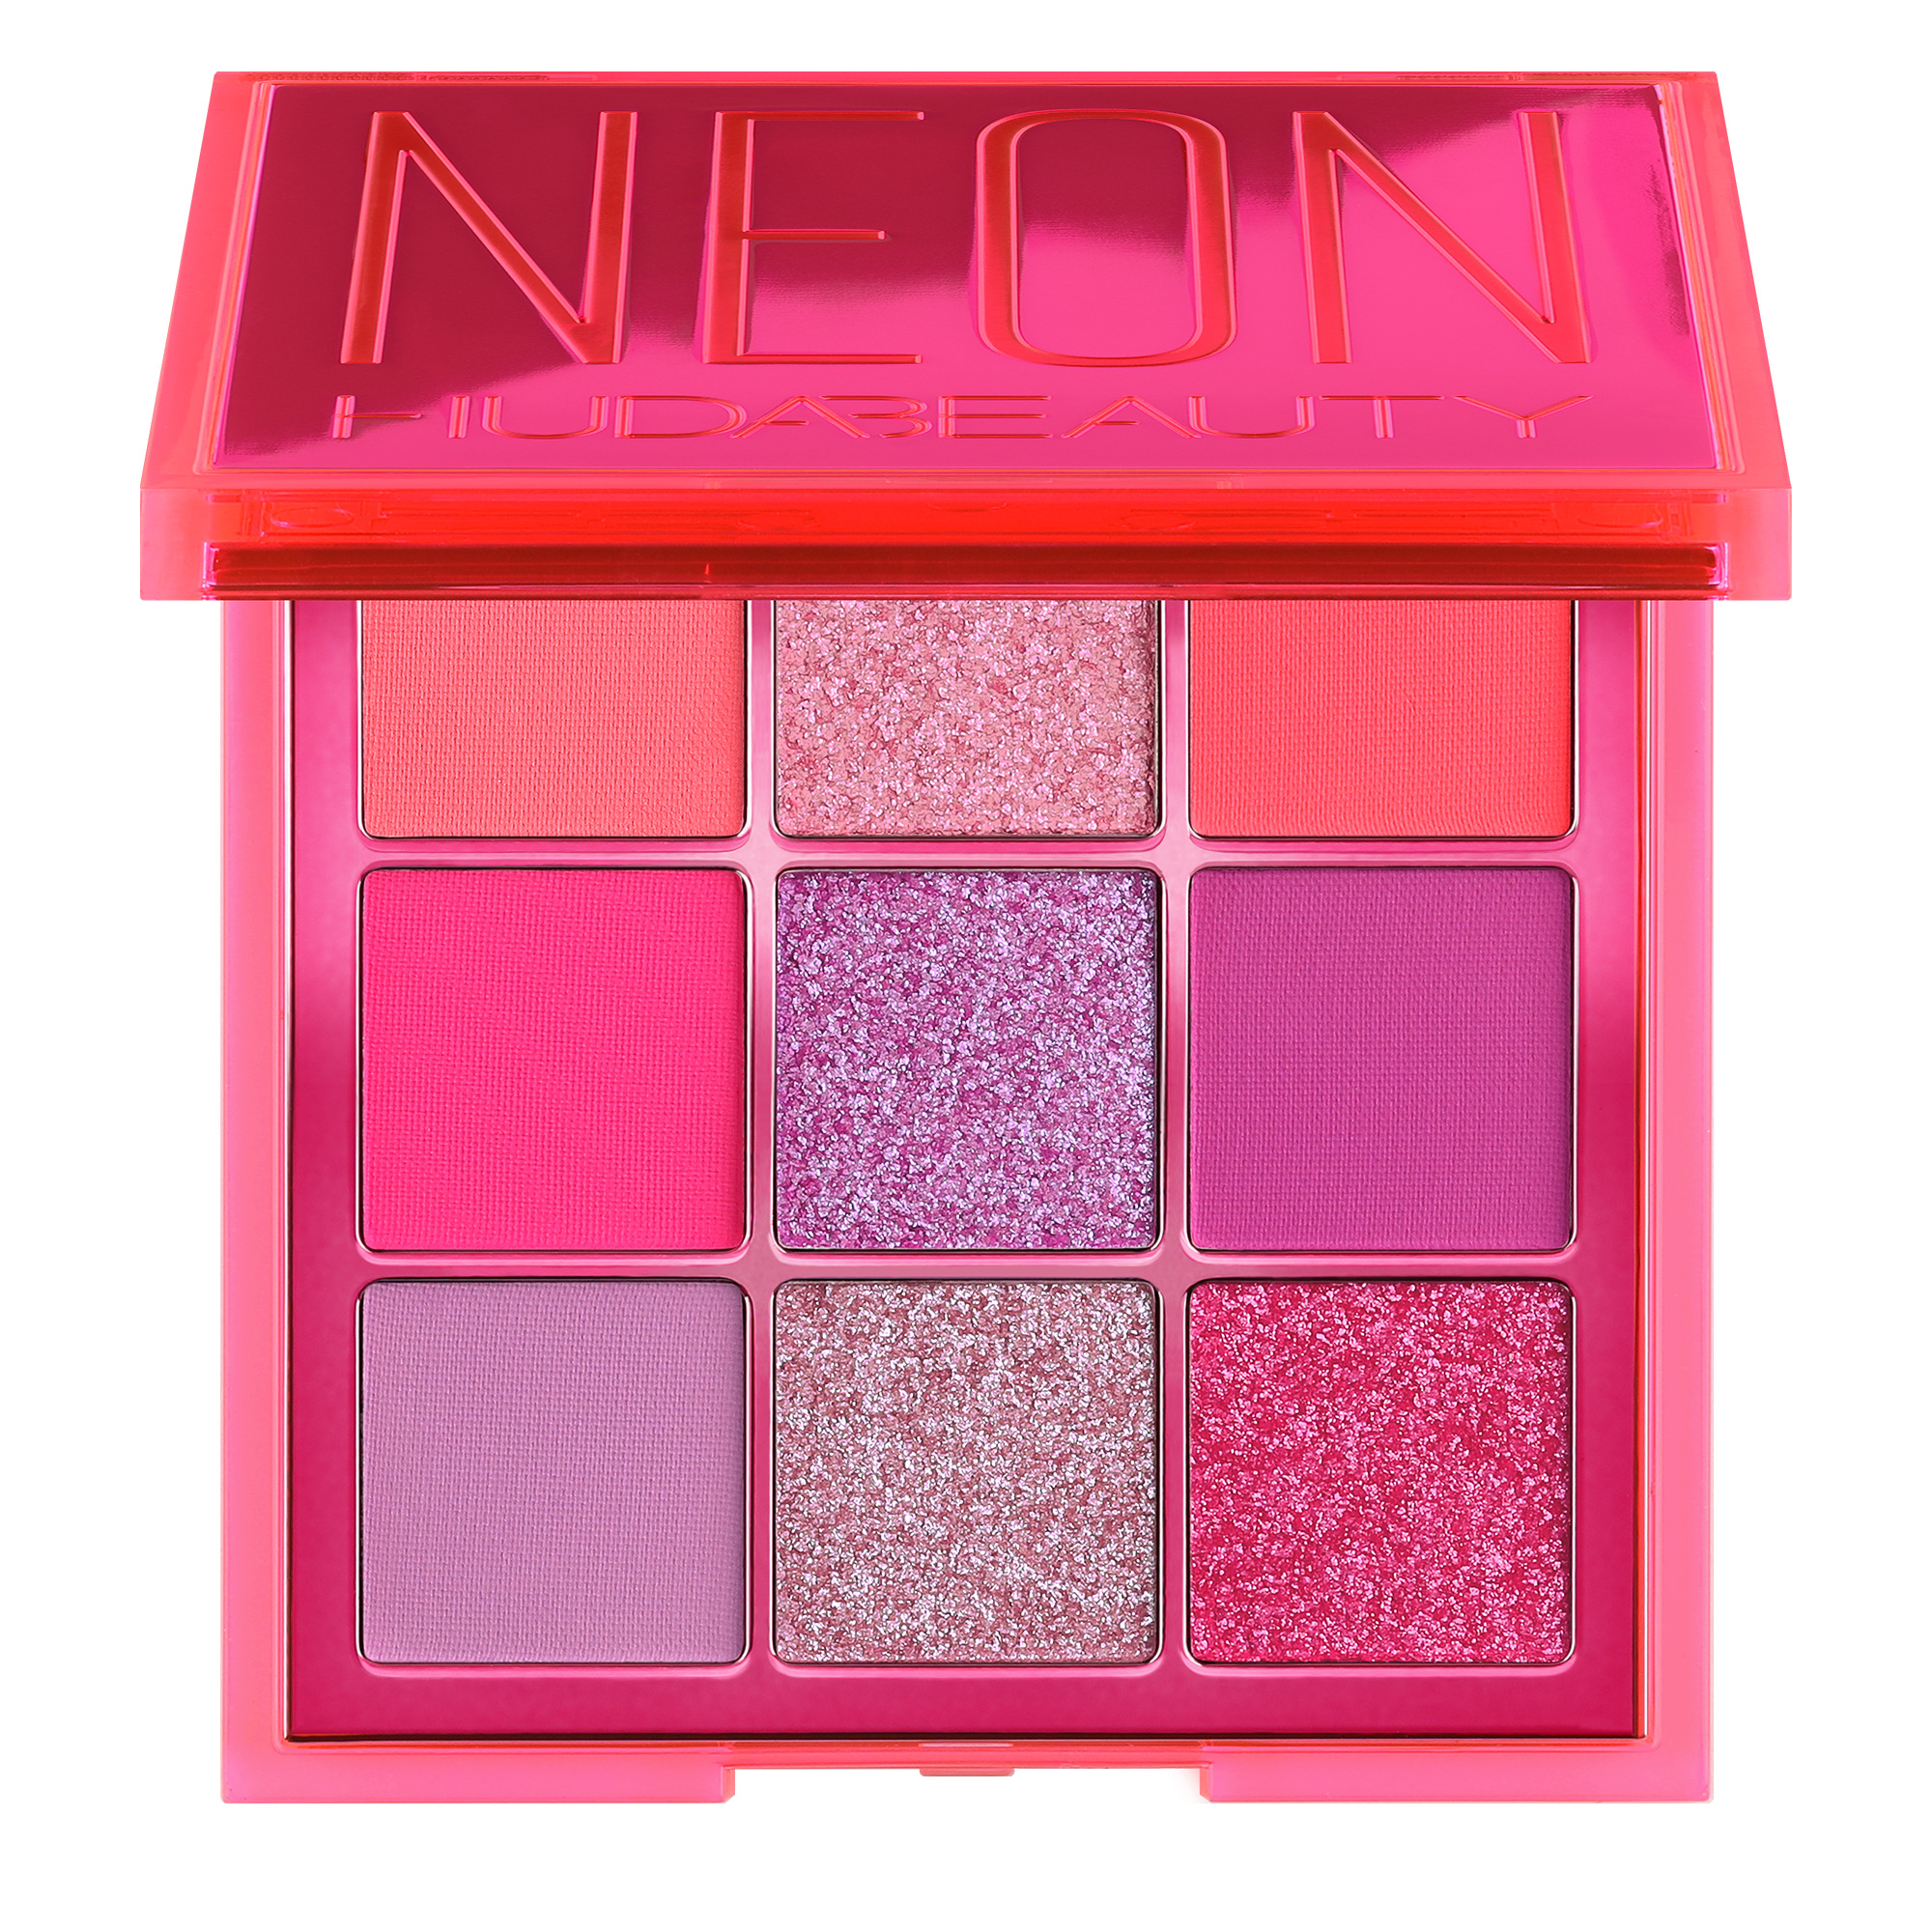 Neon Pink Obsessions